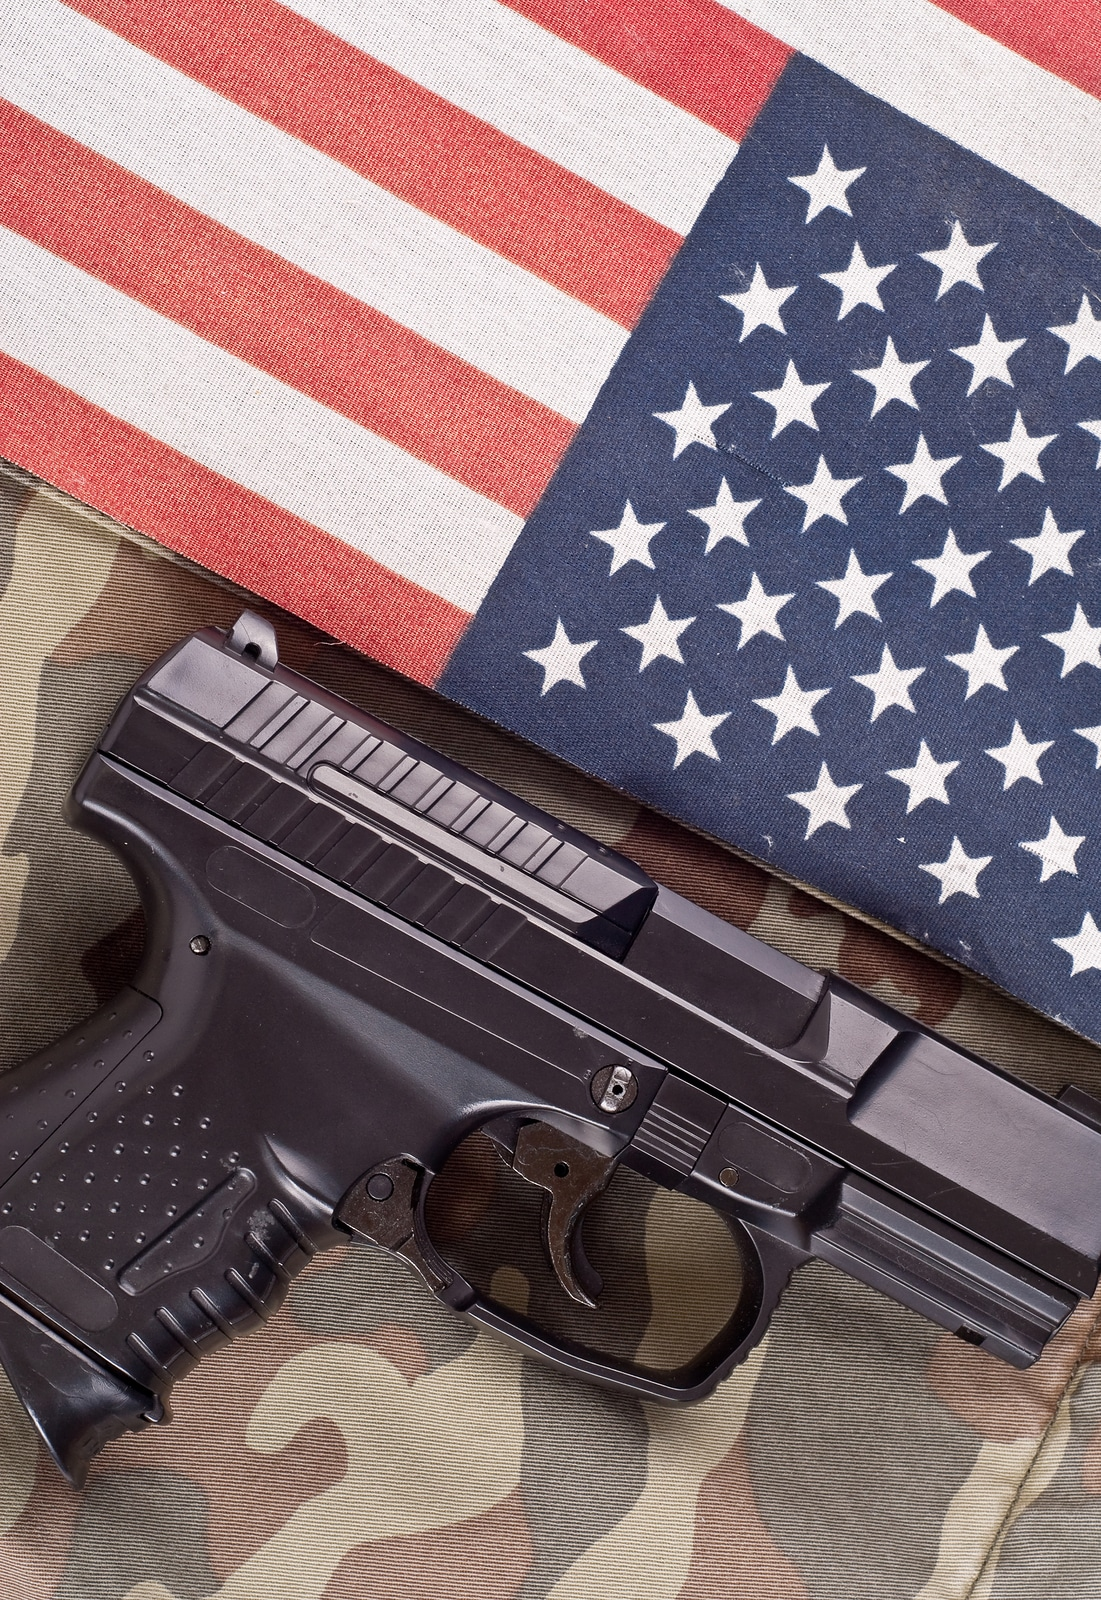 Best Handguns Used by Elite Military Forces